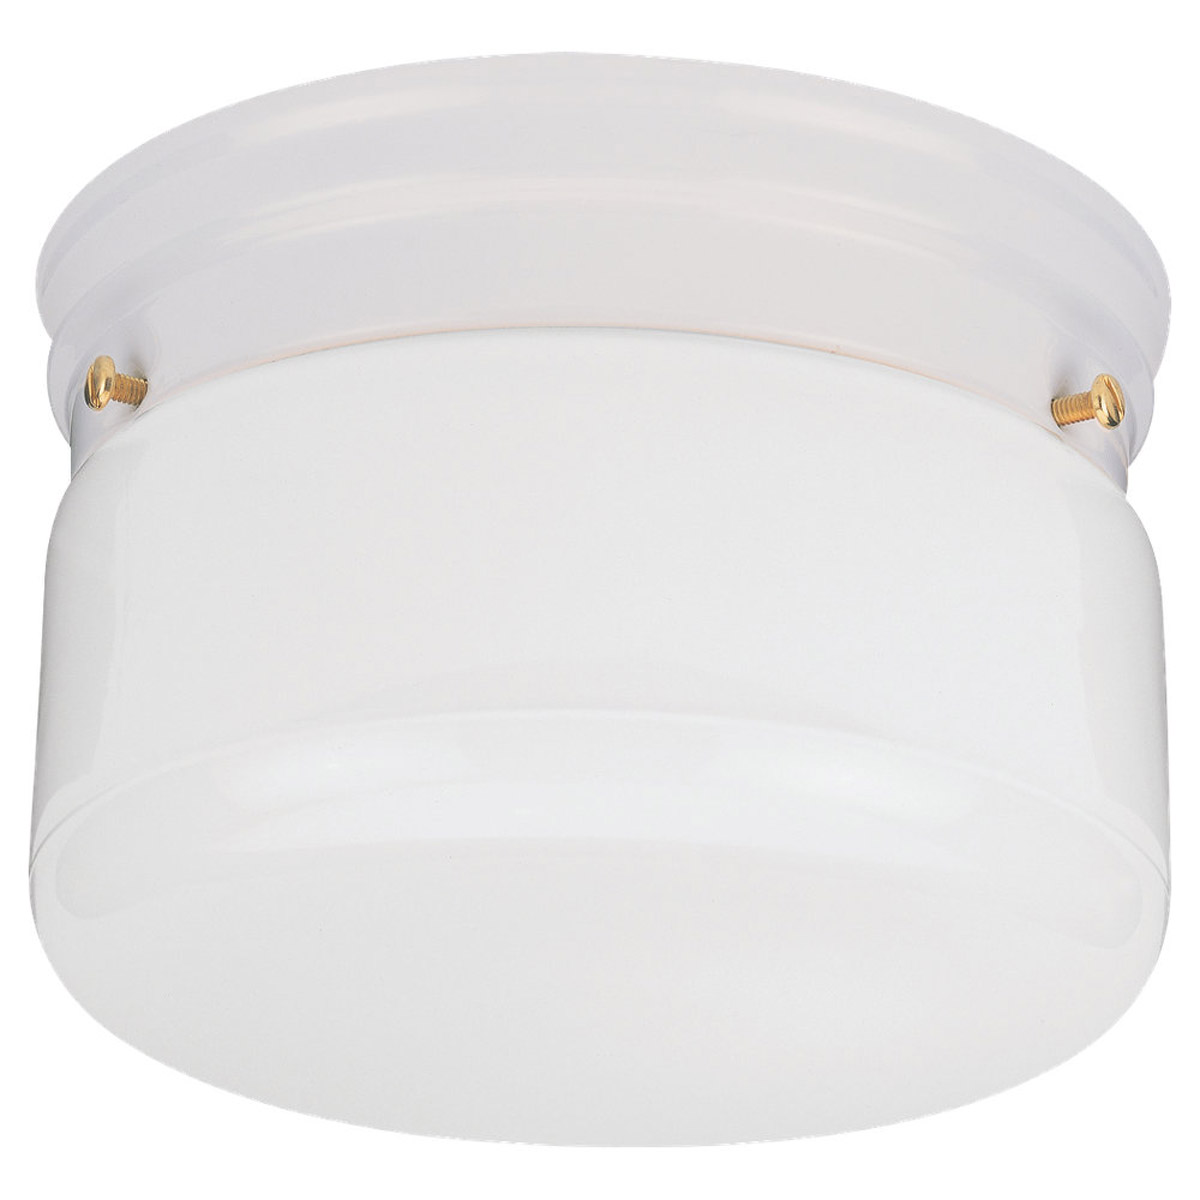 Sea Gull Lighting Economy Flush Mount 2 Light Flush Mount in White 5322-15